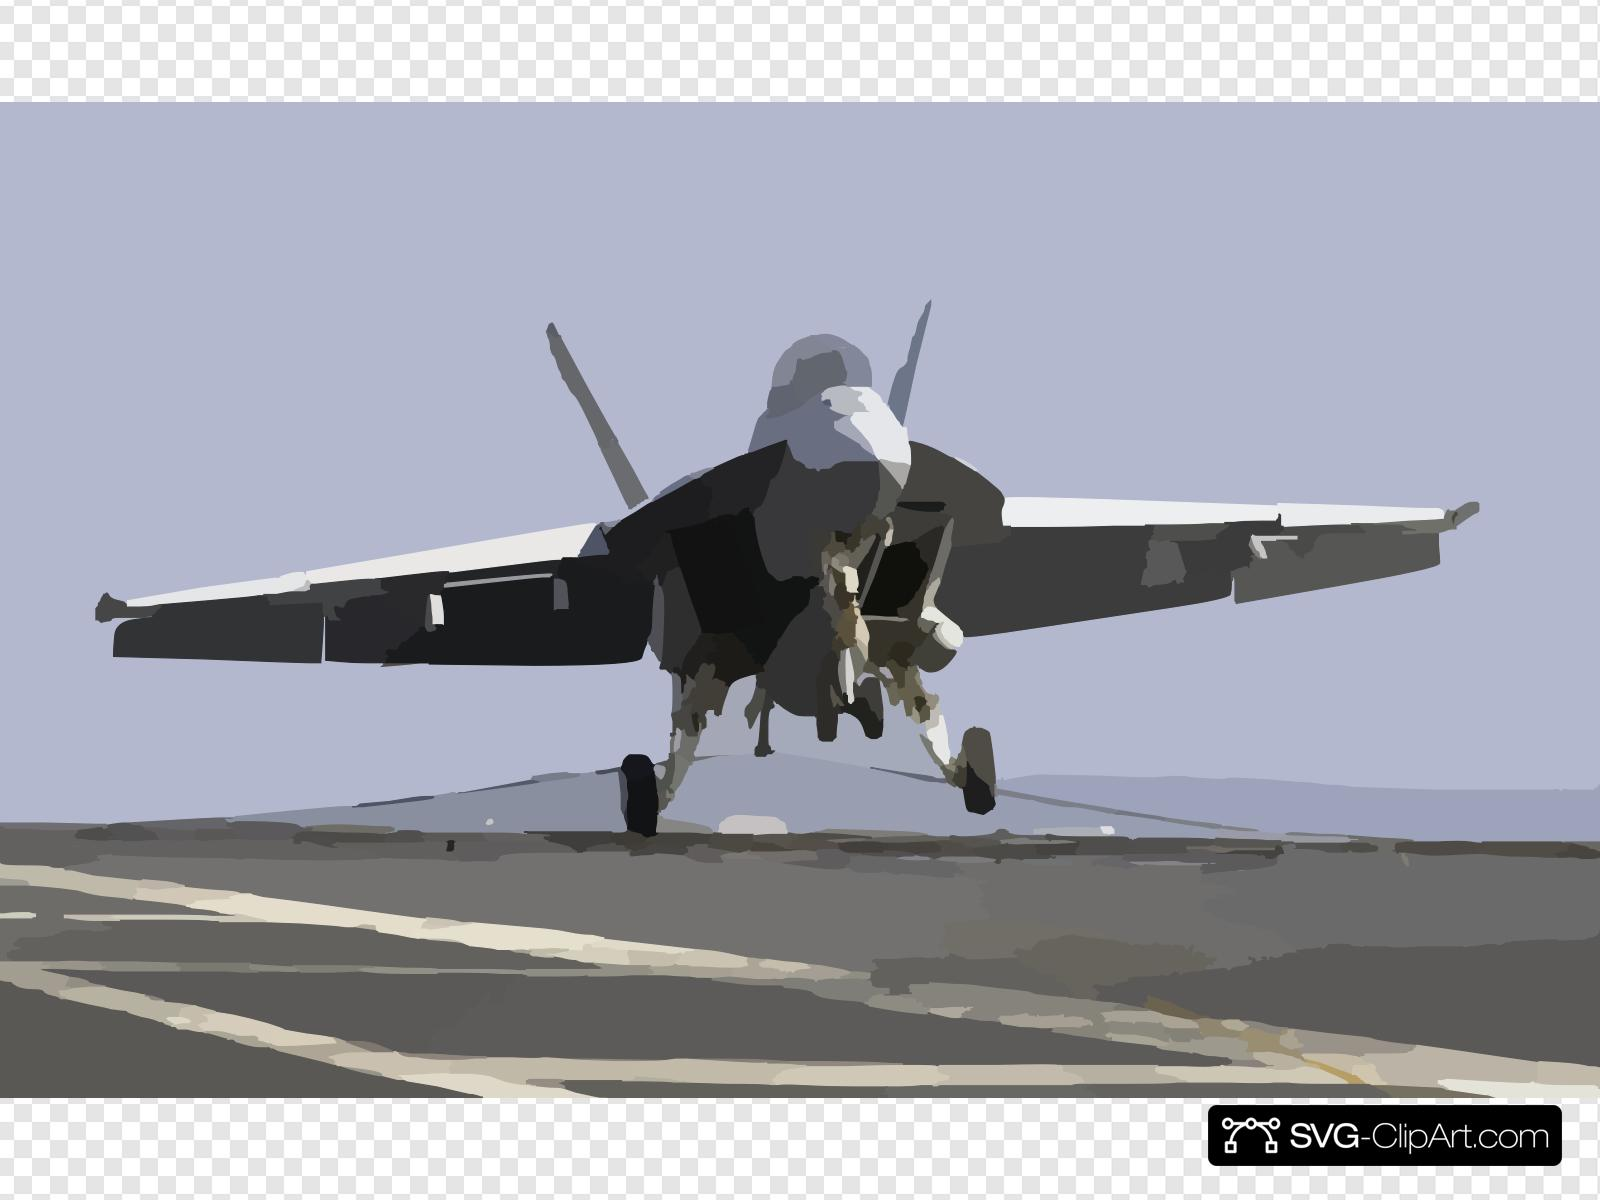 Super hornet flying clipart graphic stock An F/a-18f Super Hornet Makes An Arrested Landing On The ... graphic stock